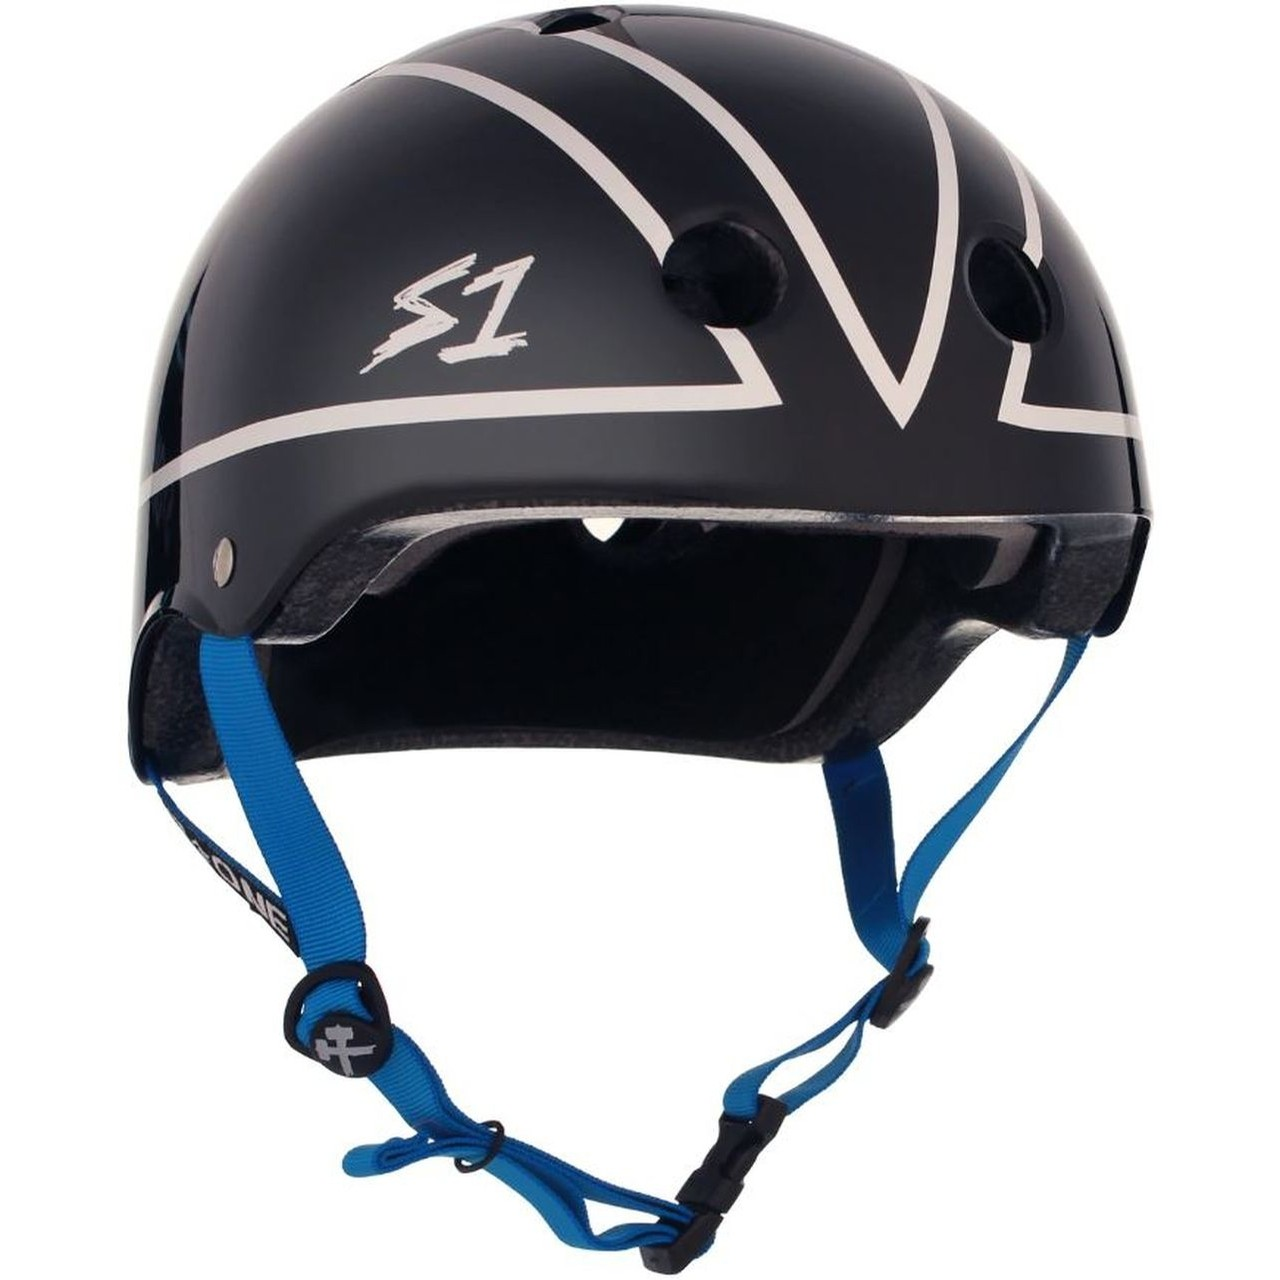 Lifer Helmet Black Gloss/ Lonny